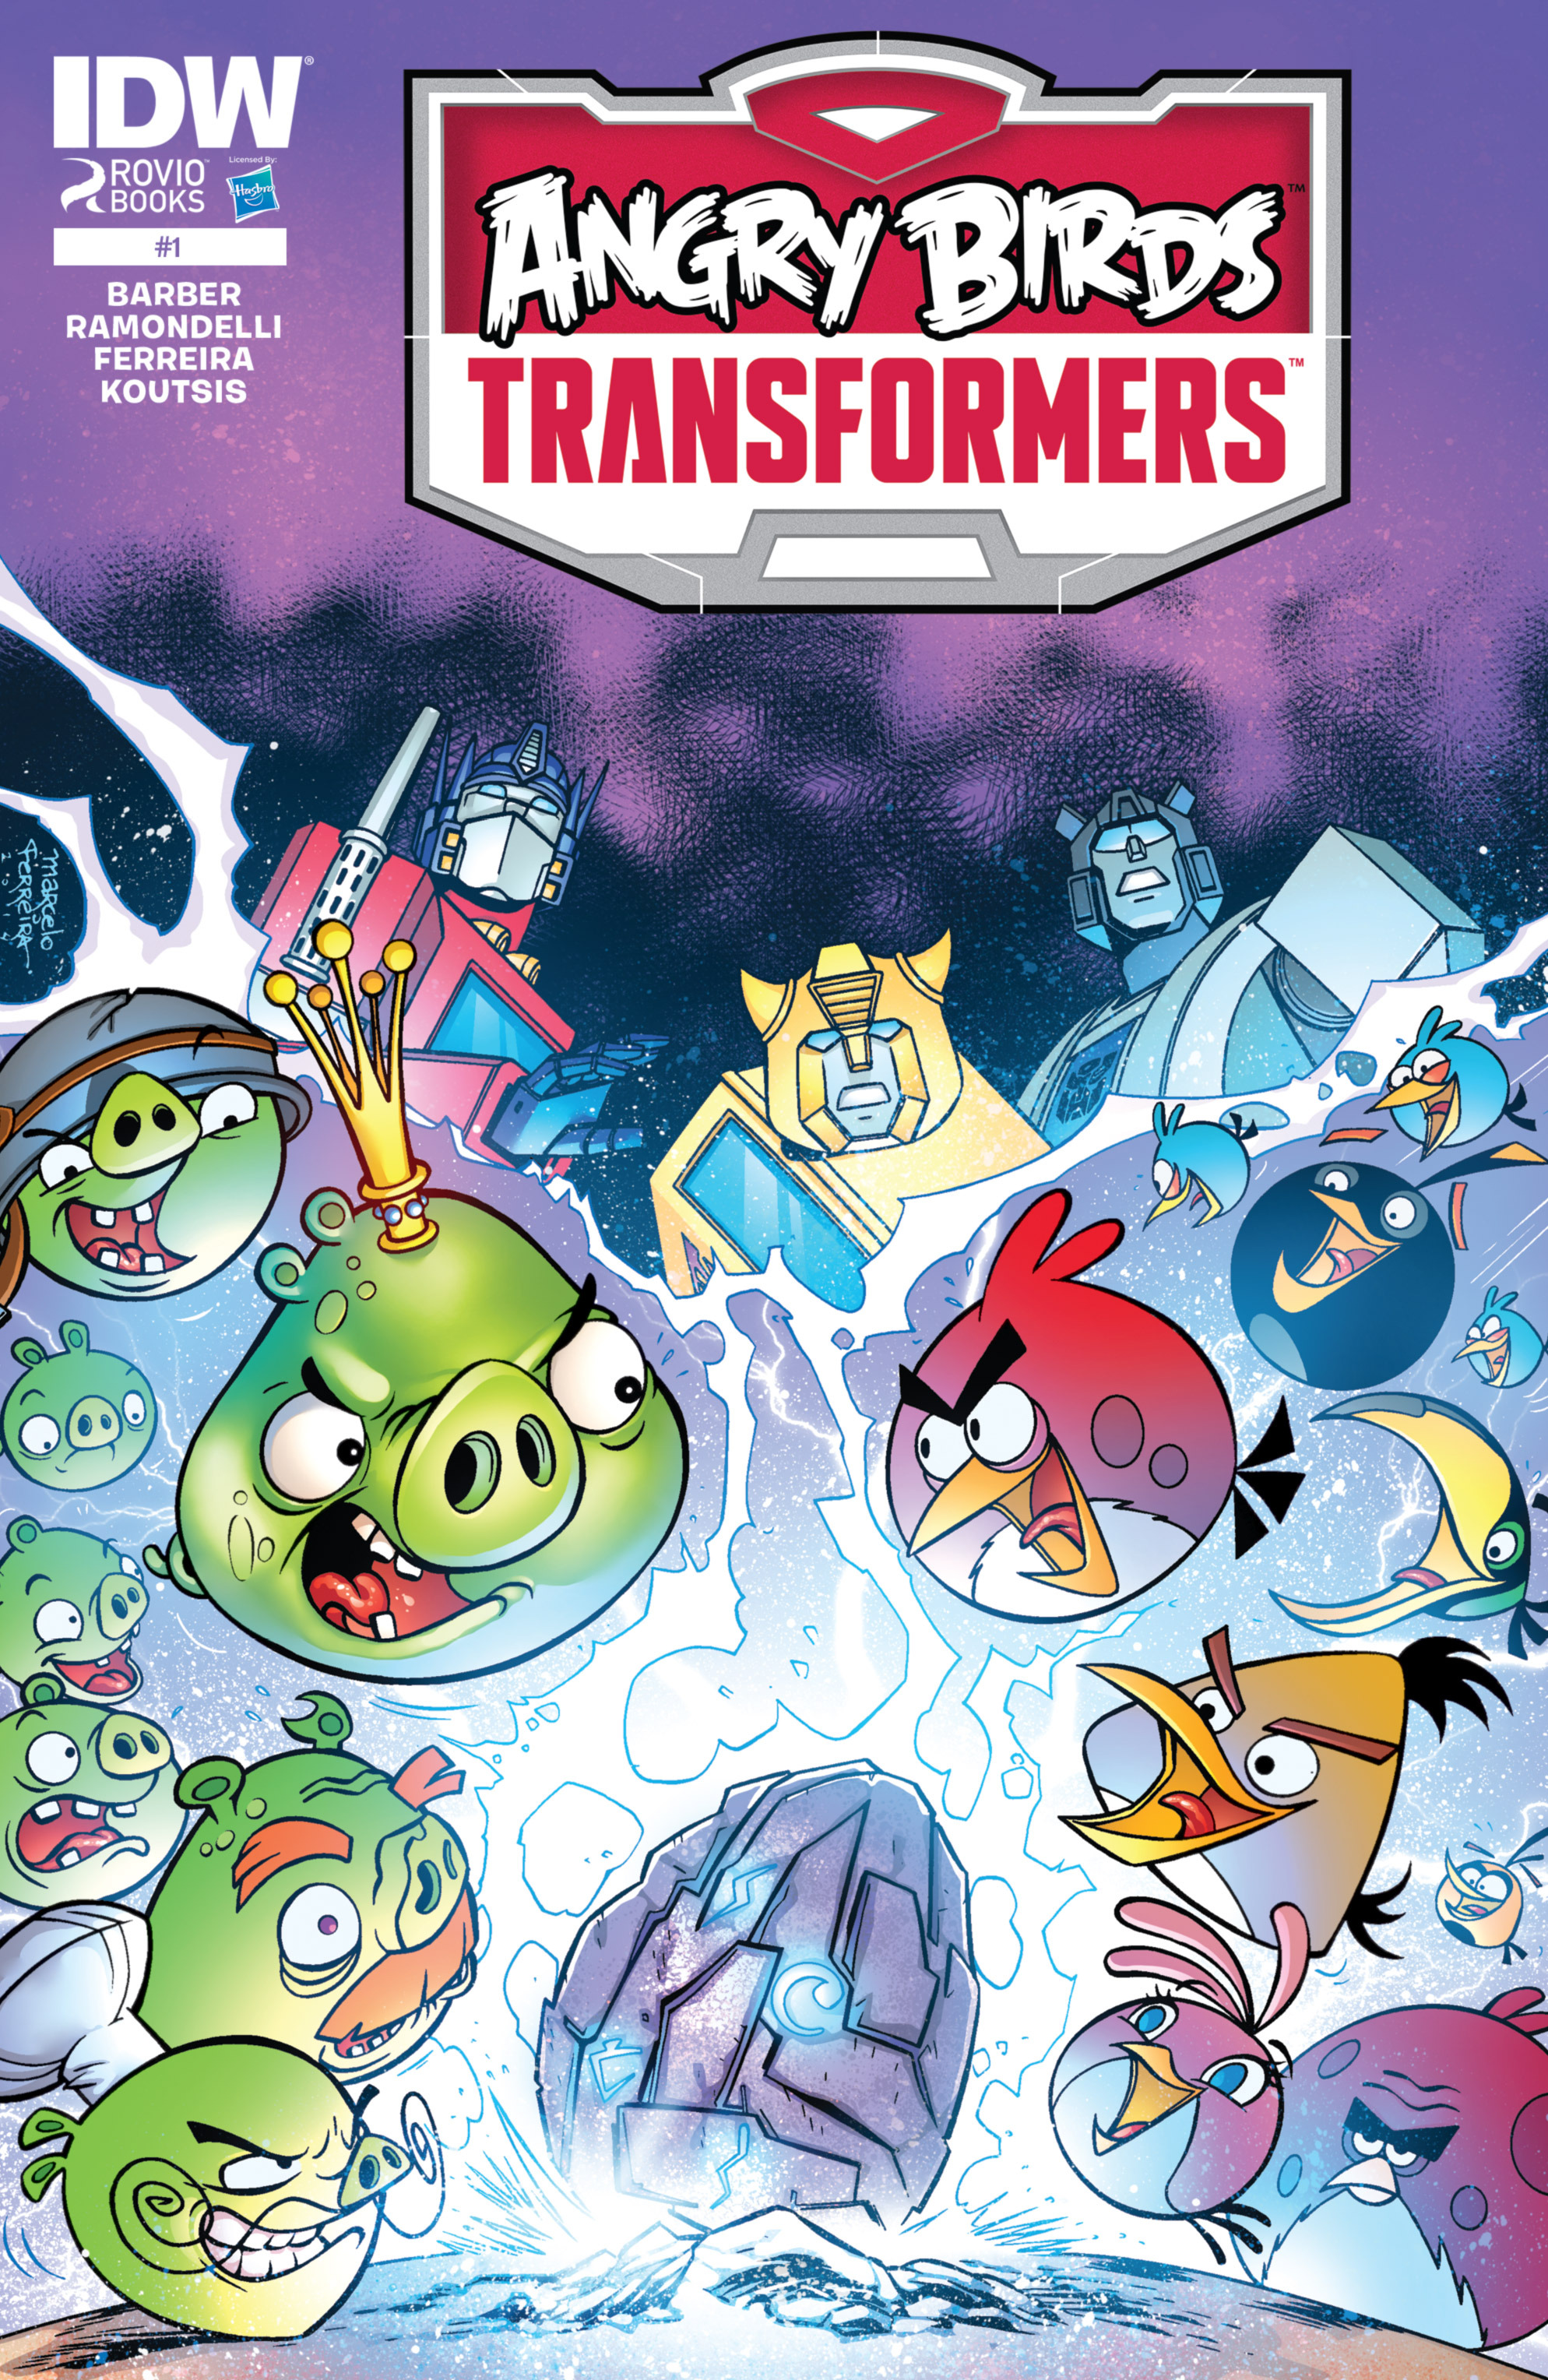 Read online Angry Birds Transformers comic -  Issue #1 - 1